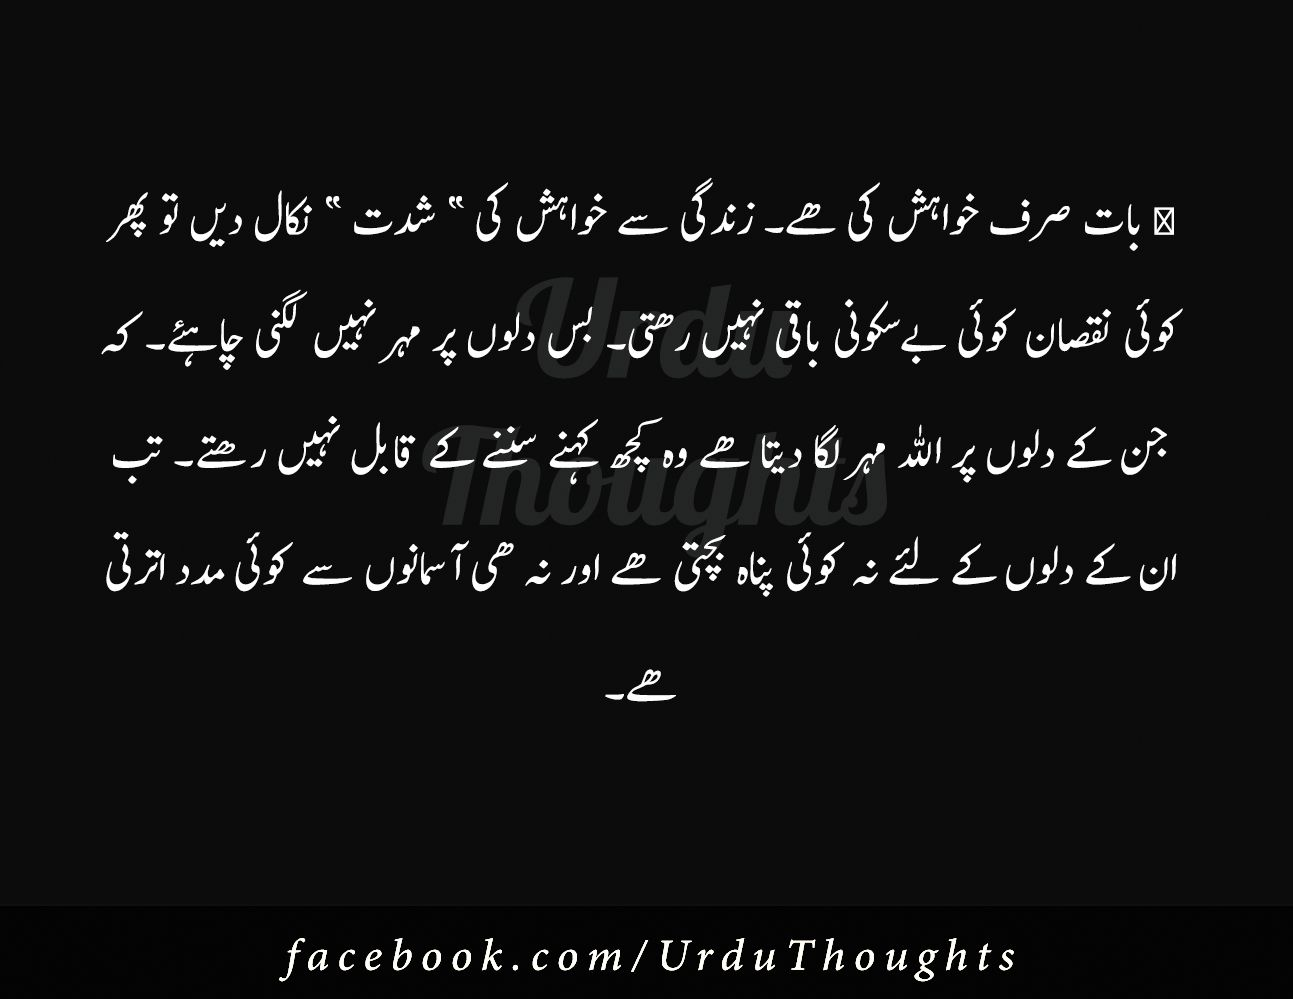 Urdu Thoughts Best Urdu Quotes Black Background Images Urdu